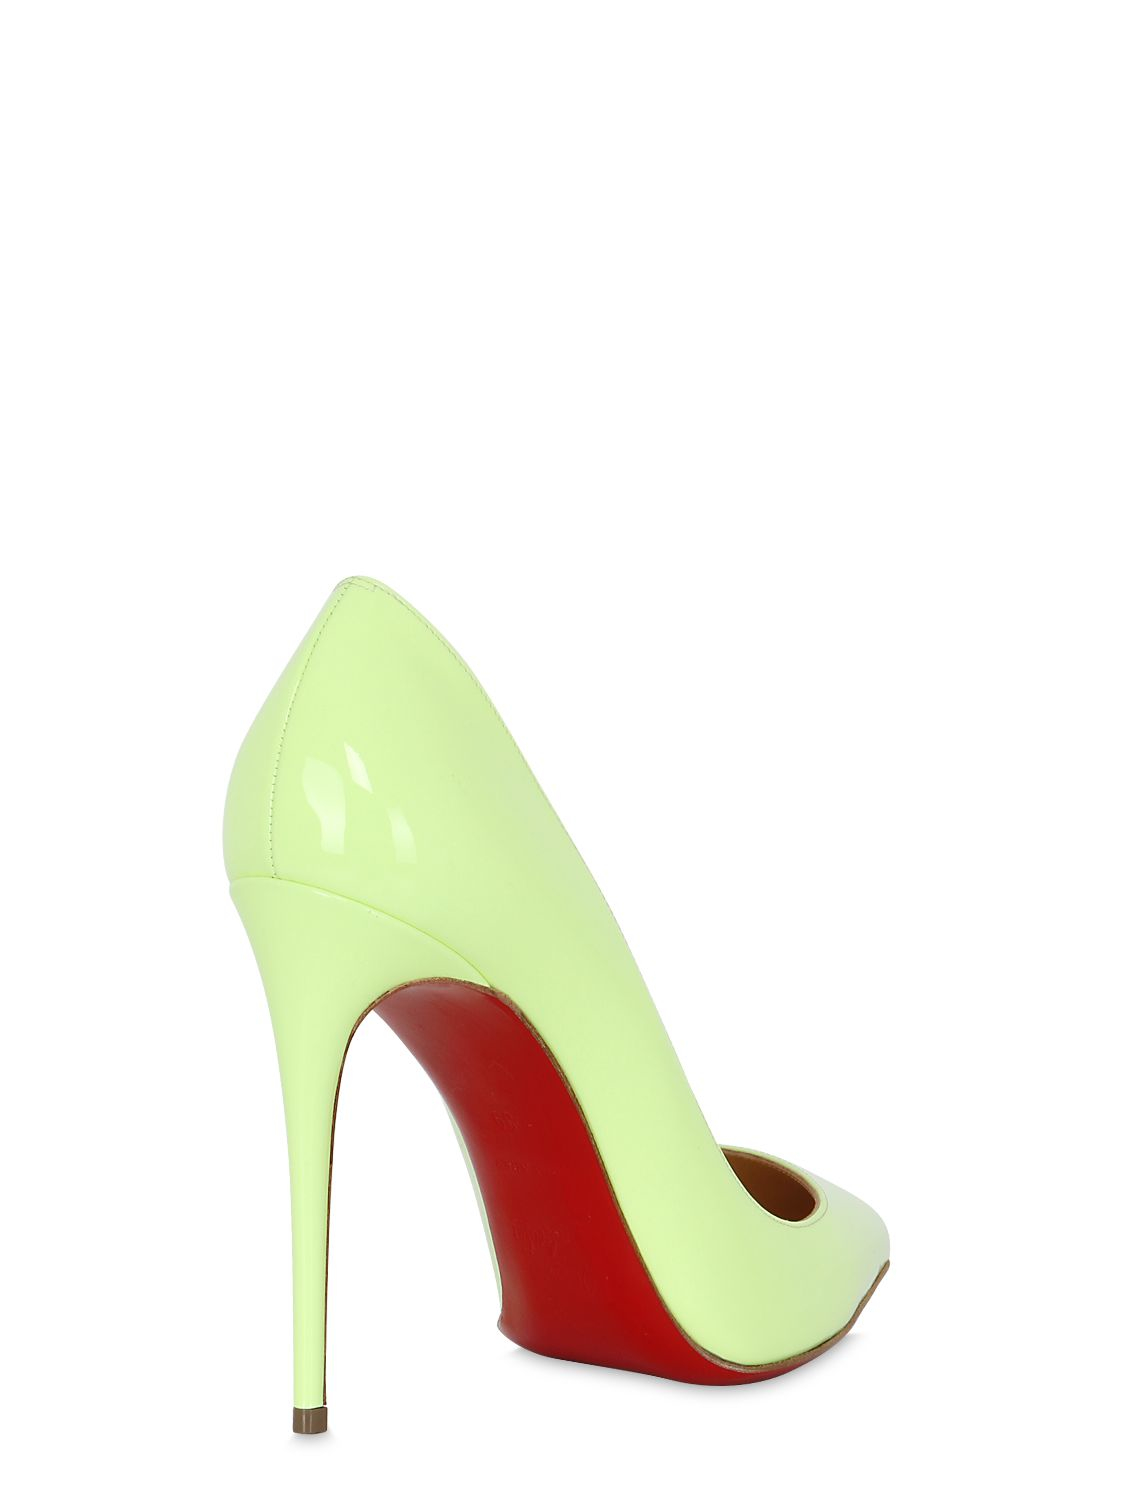 b192f53edd23 ... coupon christian louboutin pigalle follies patent leather pumps in  green lyst a7c1f adb53